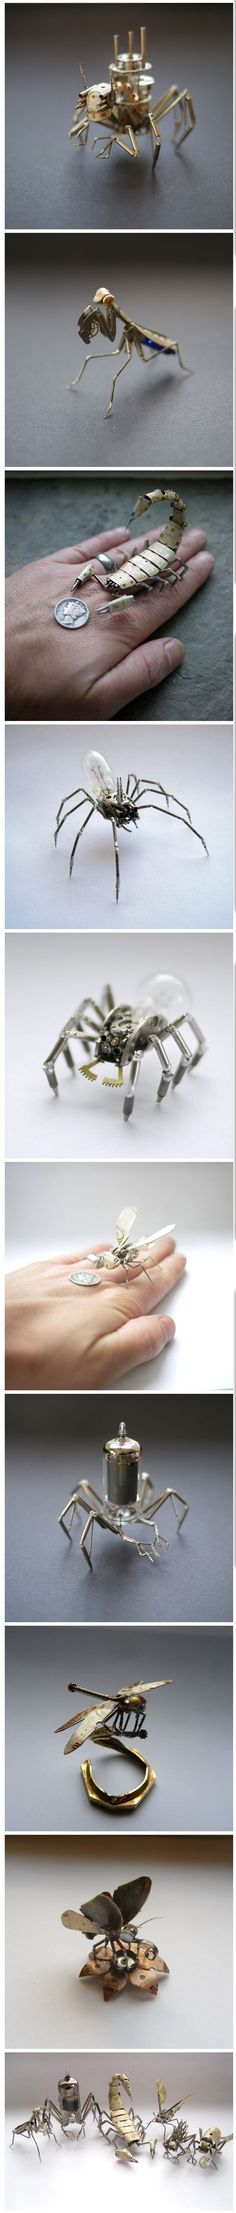 Tiny Mechanical Insects Made of Watch Parts - Monde Du Loisir - www.mondeduloisir.fr